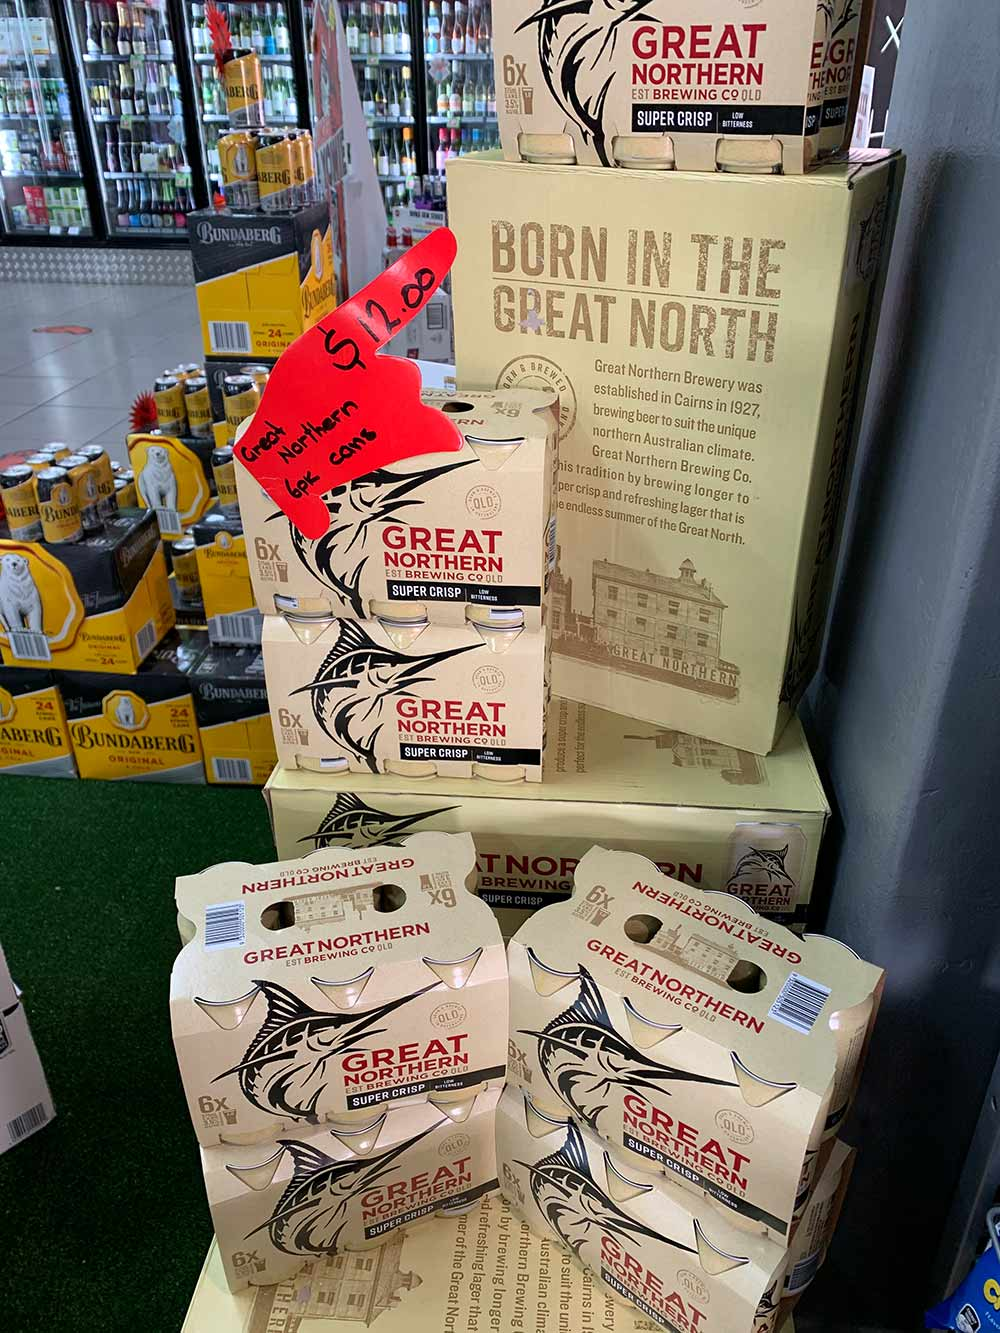 Great Northern - Great deal... limited stock